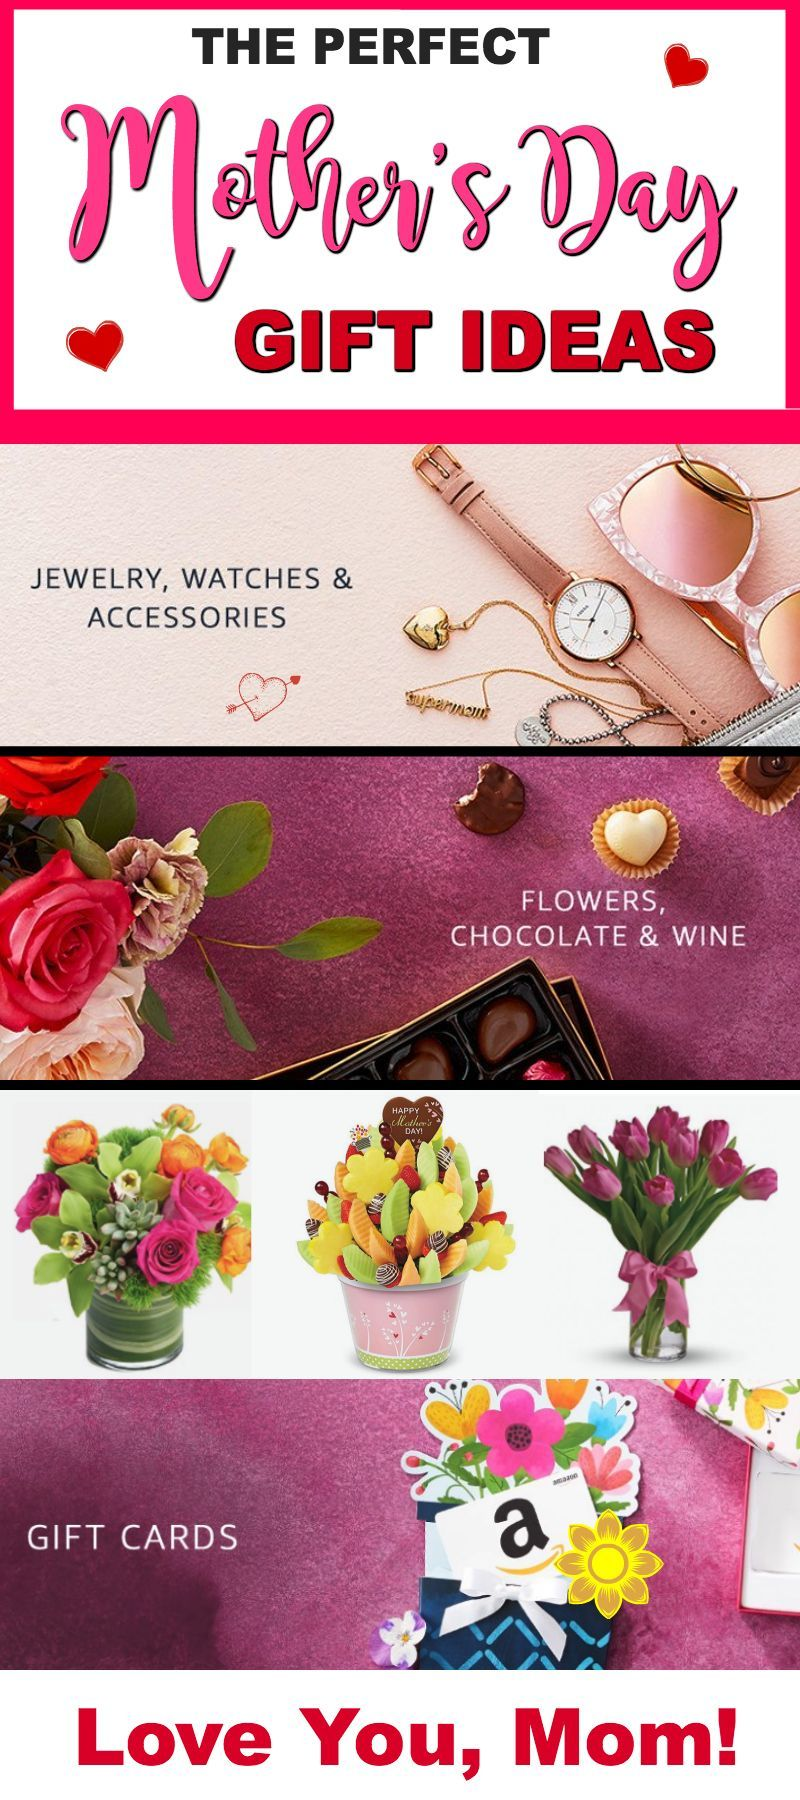 Motherus Day Gift Ideas   The Perfect Motherus Day Gifts for